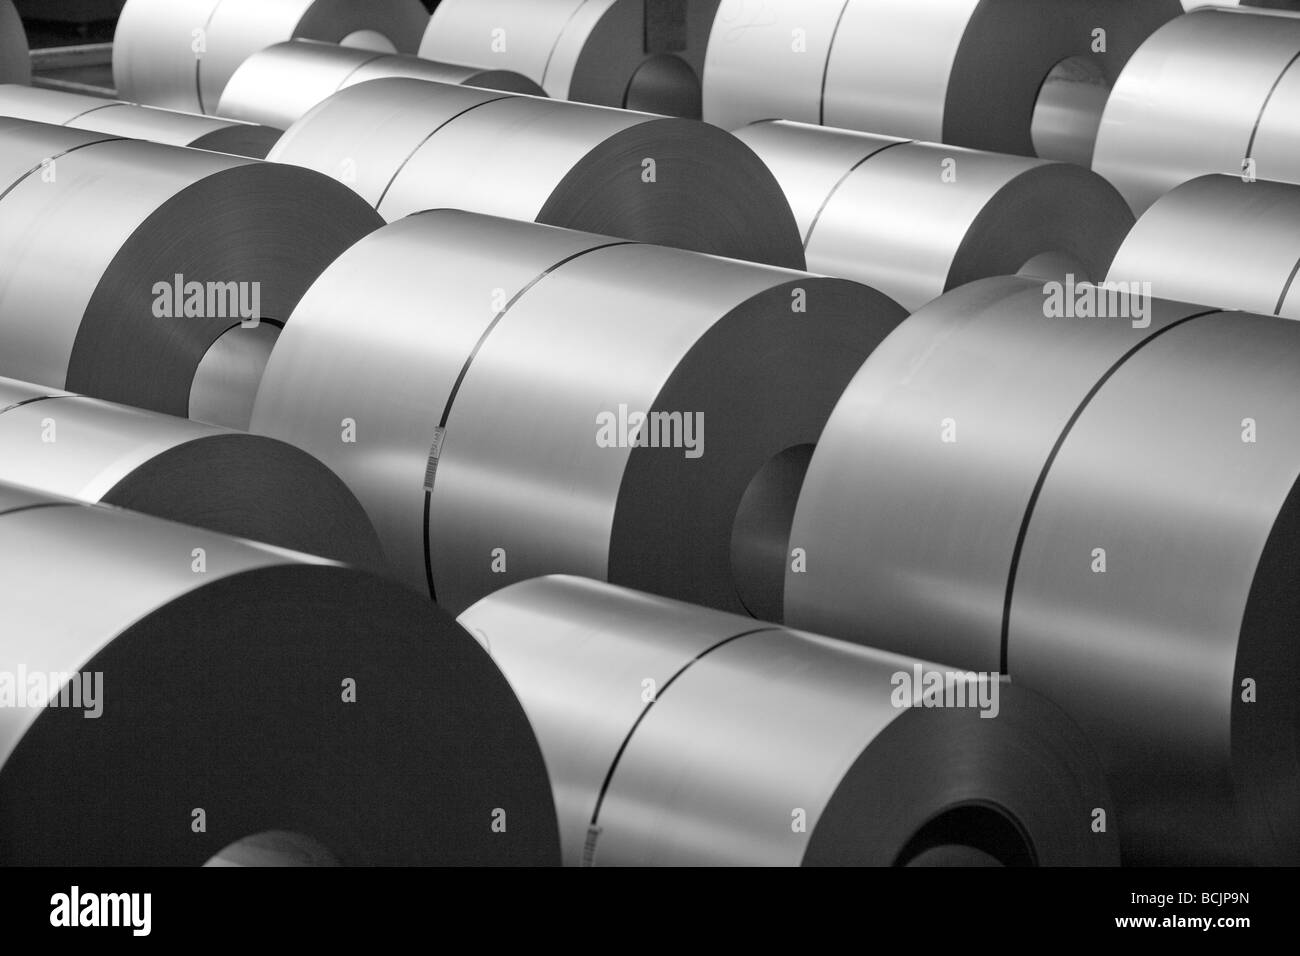 Steel at steel coil bracket - Stock Image